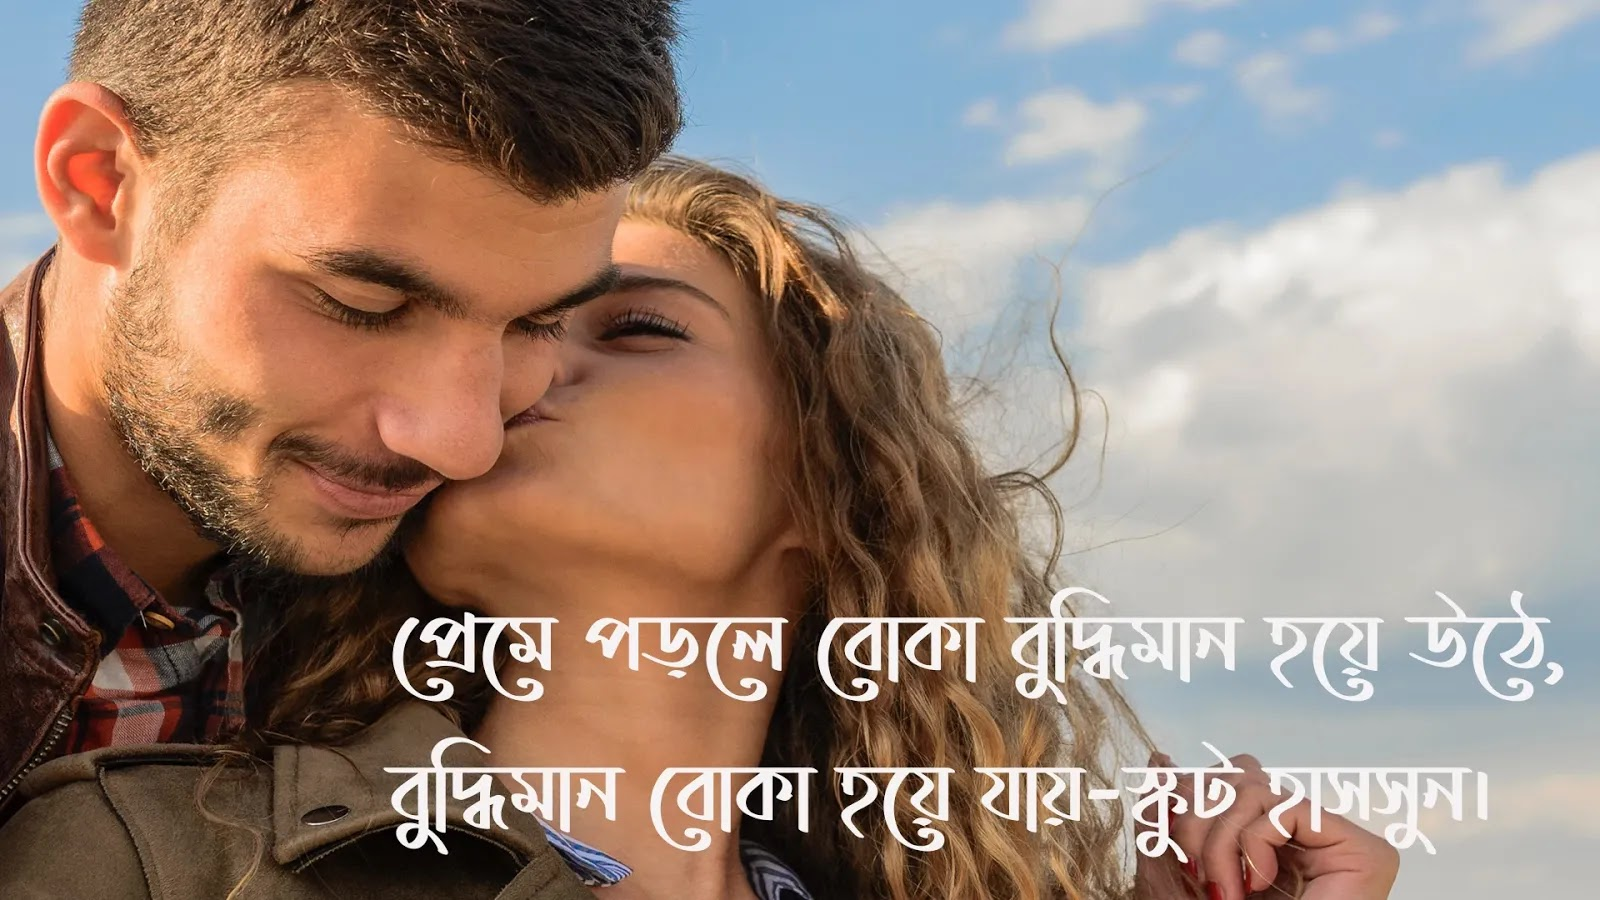 bengali sad quotes about friendship